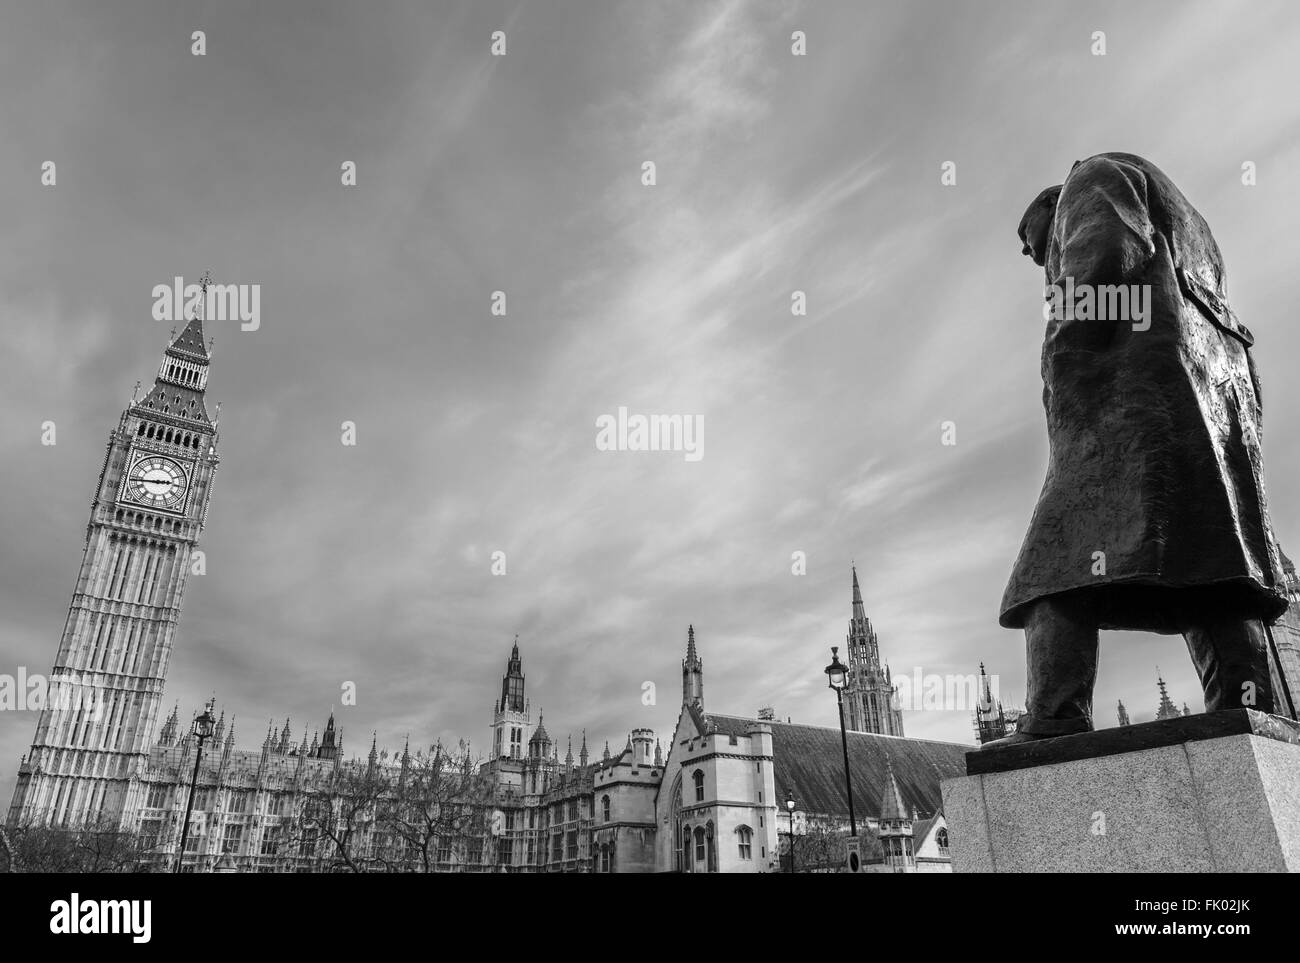 Statue de Sir Winston Churchill avec le Palais de Westminster derrière, la place du Parlement, Westminster, Photo Stock